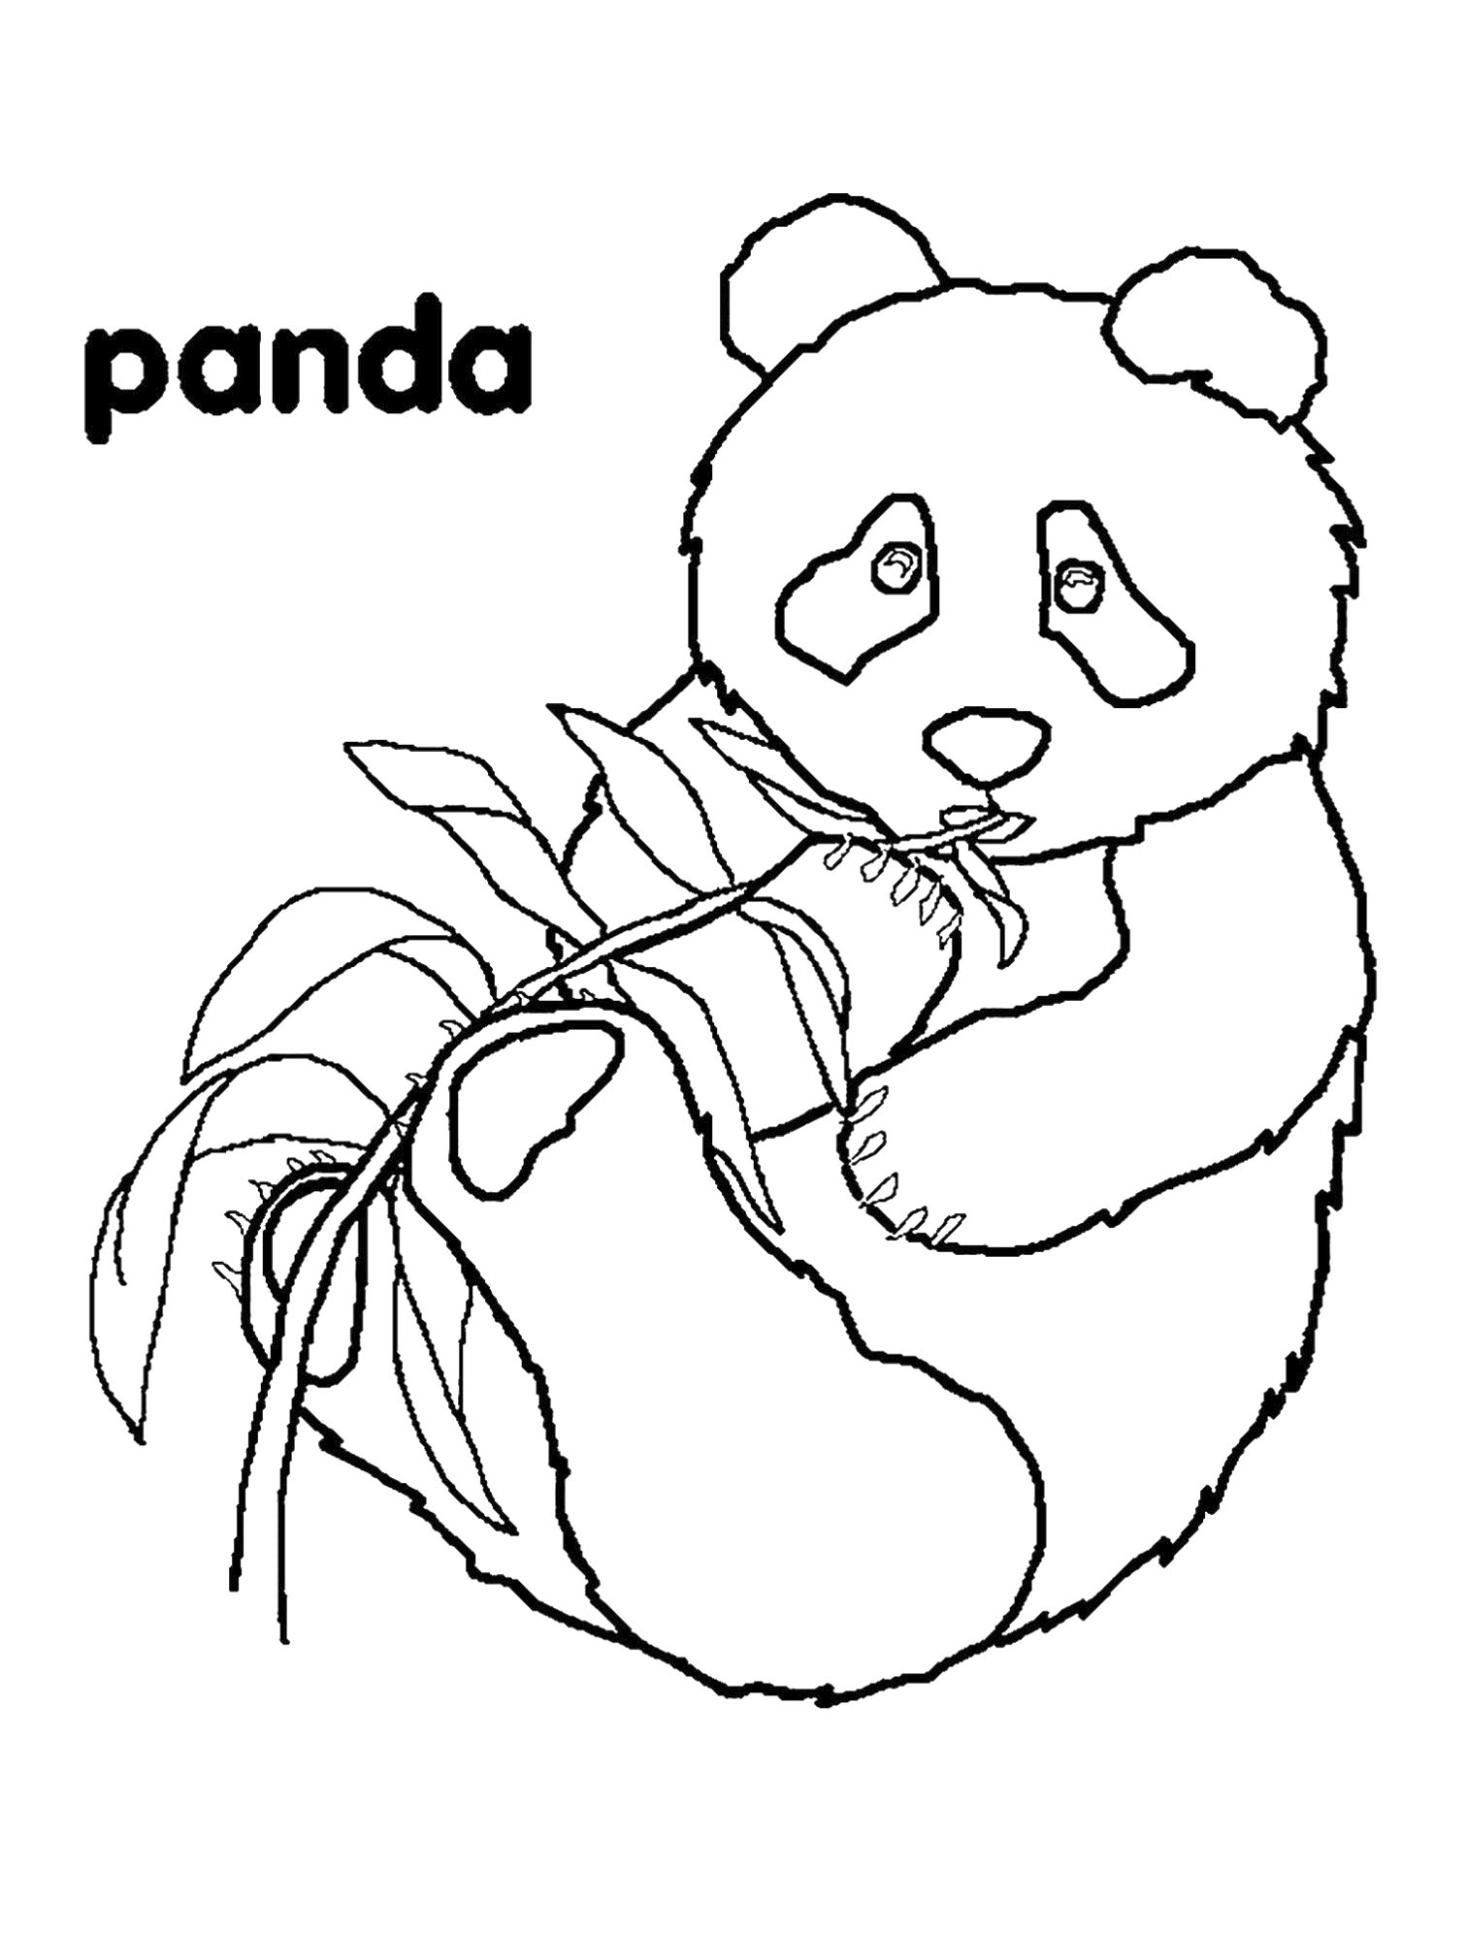 Panda Coloring Pages to Print